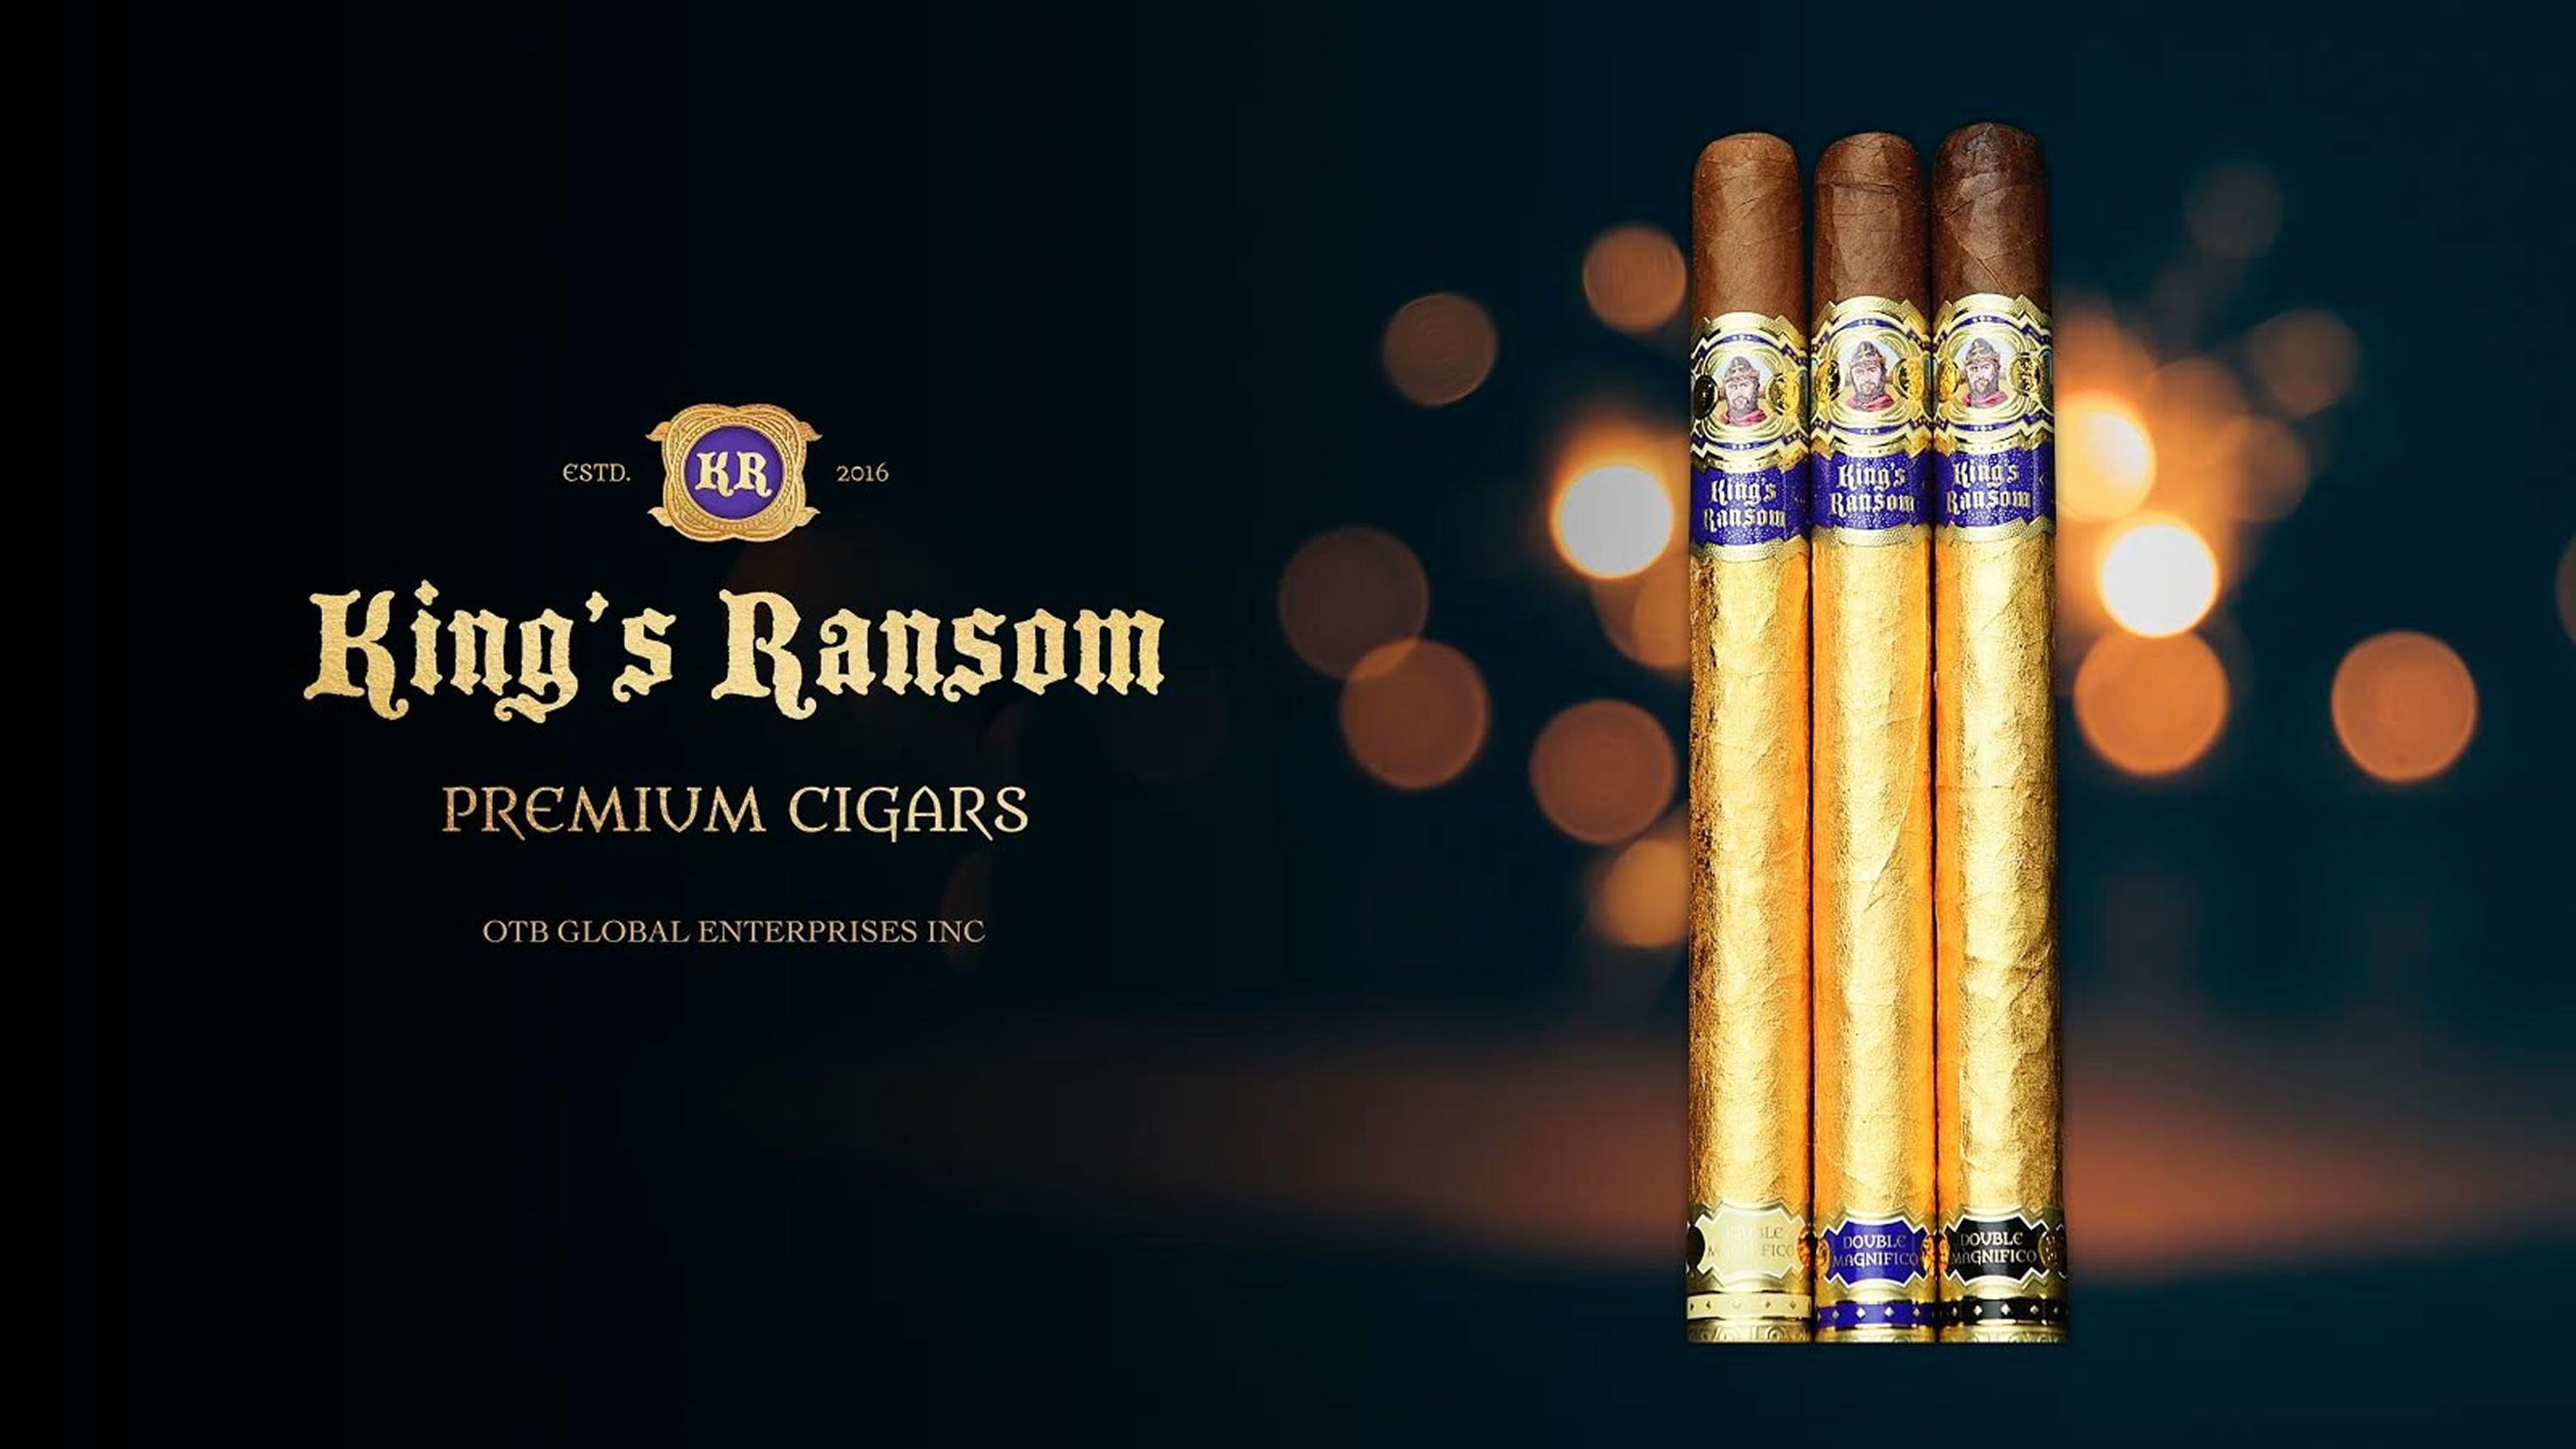 Kings Ransom Premium Cigars